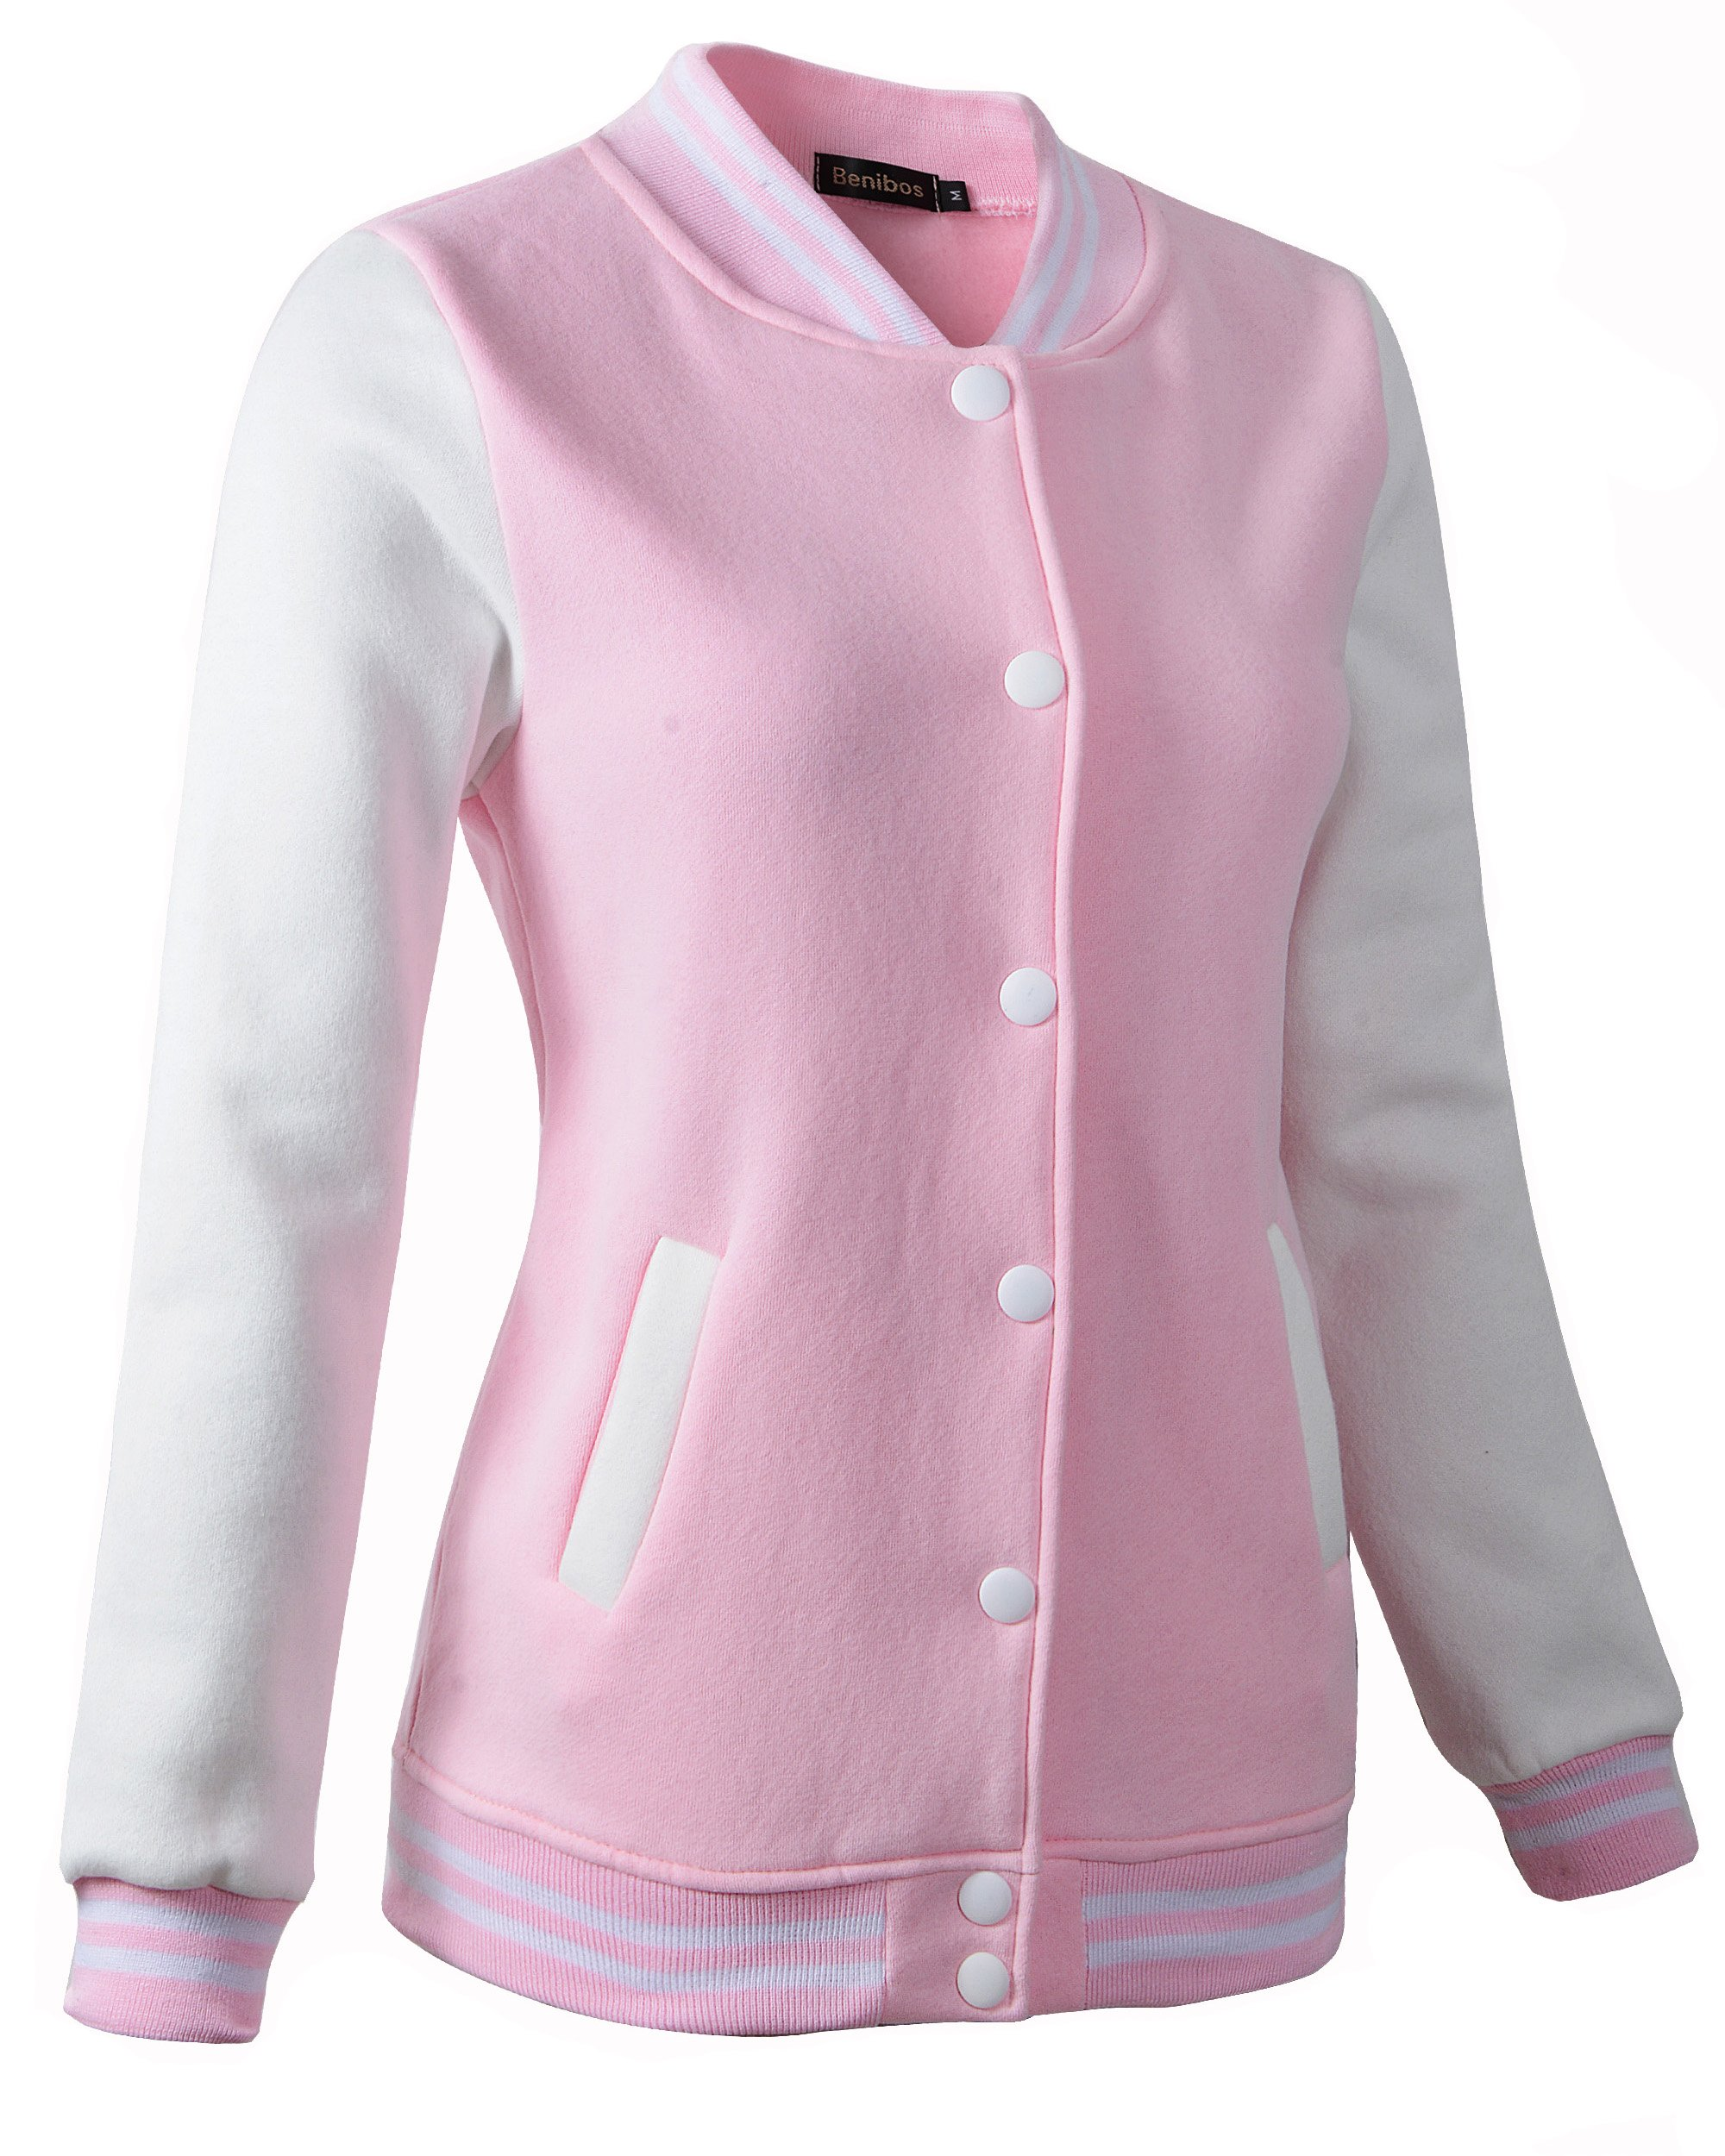 Benibos Women Varsity Jacket Casual Loose Hoodie (US:S/Tag L, 6808Pink) by Benibos